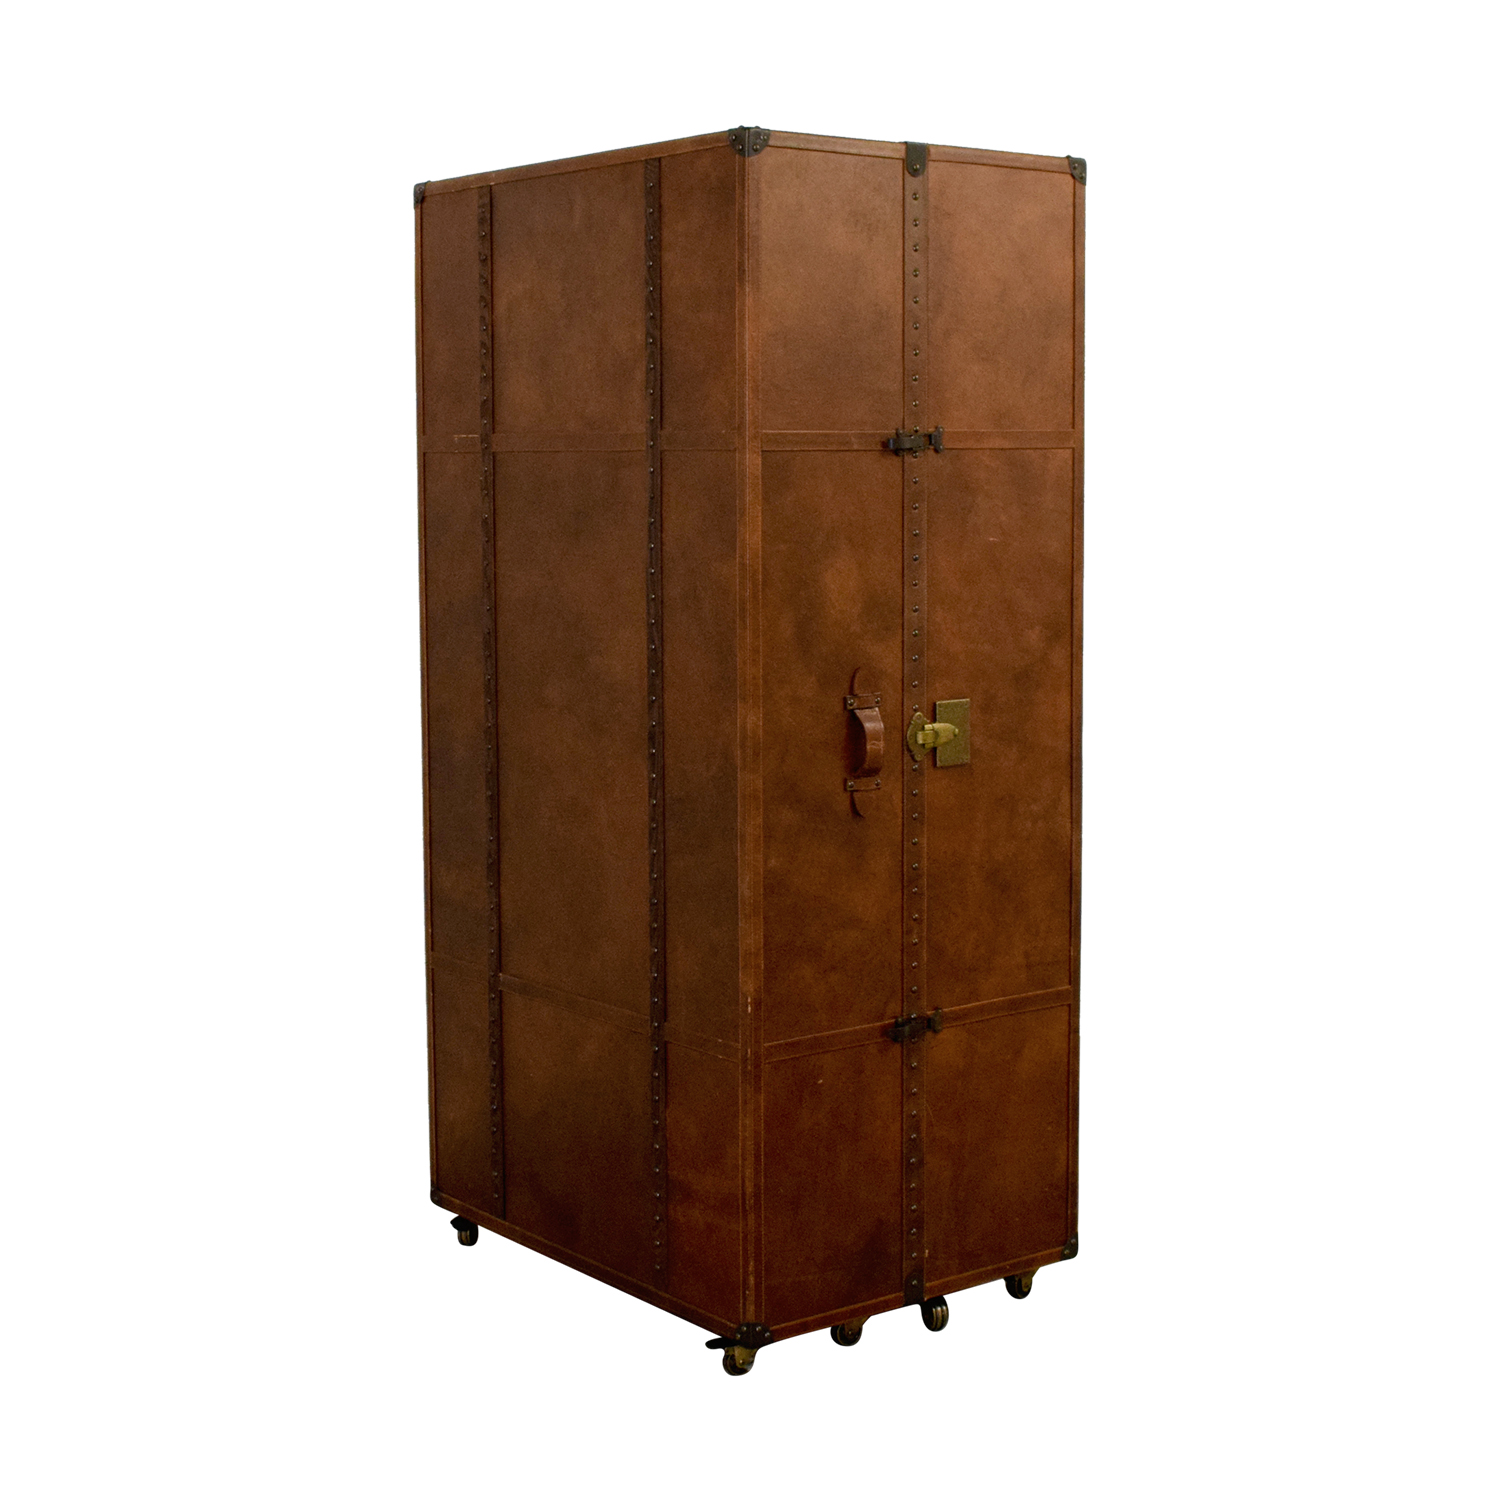 Restoration Hardware Timothy Oulton Handcrafted Travelling Steam Trunk / Wardrobes & Armoires